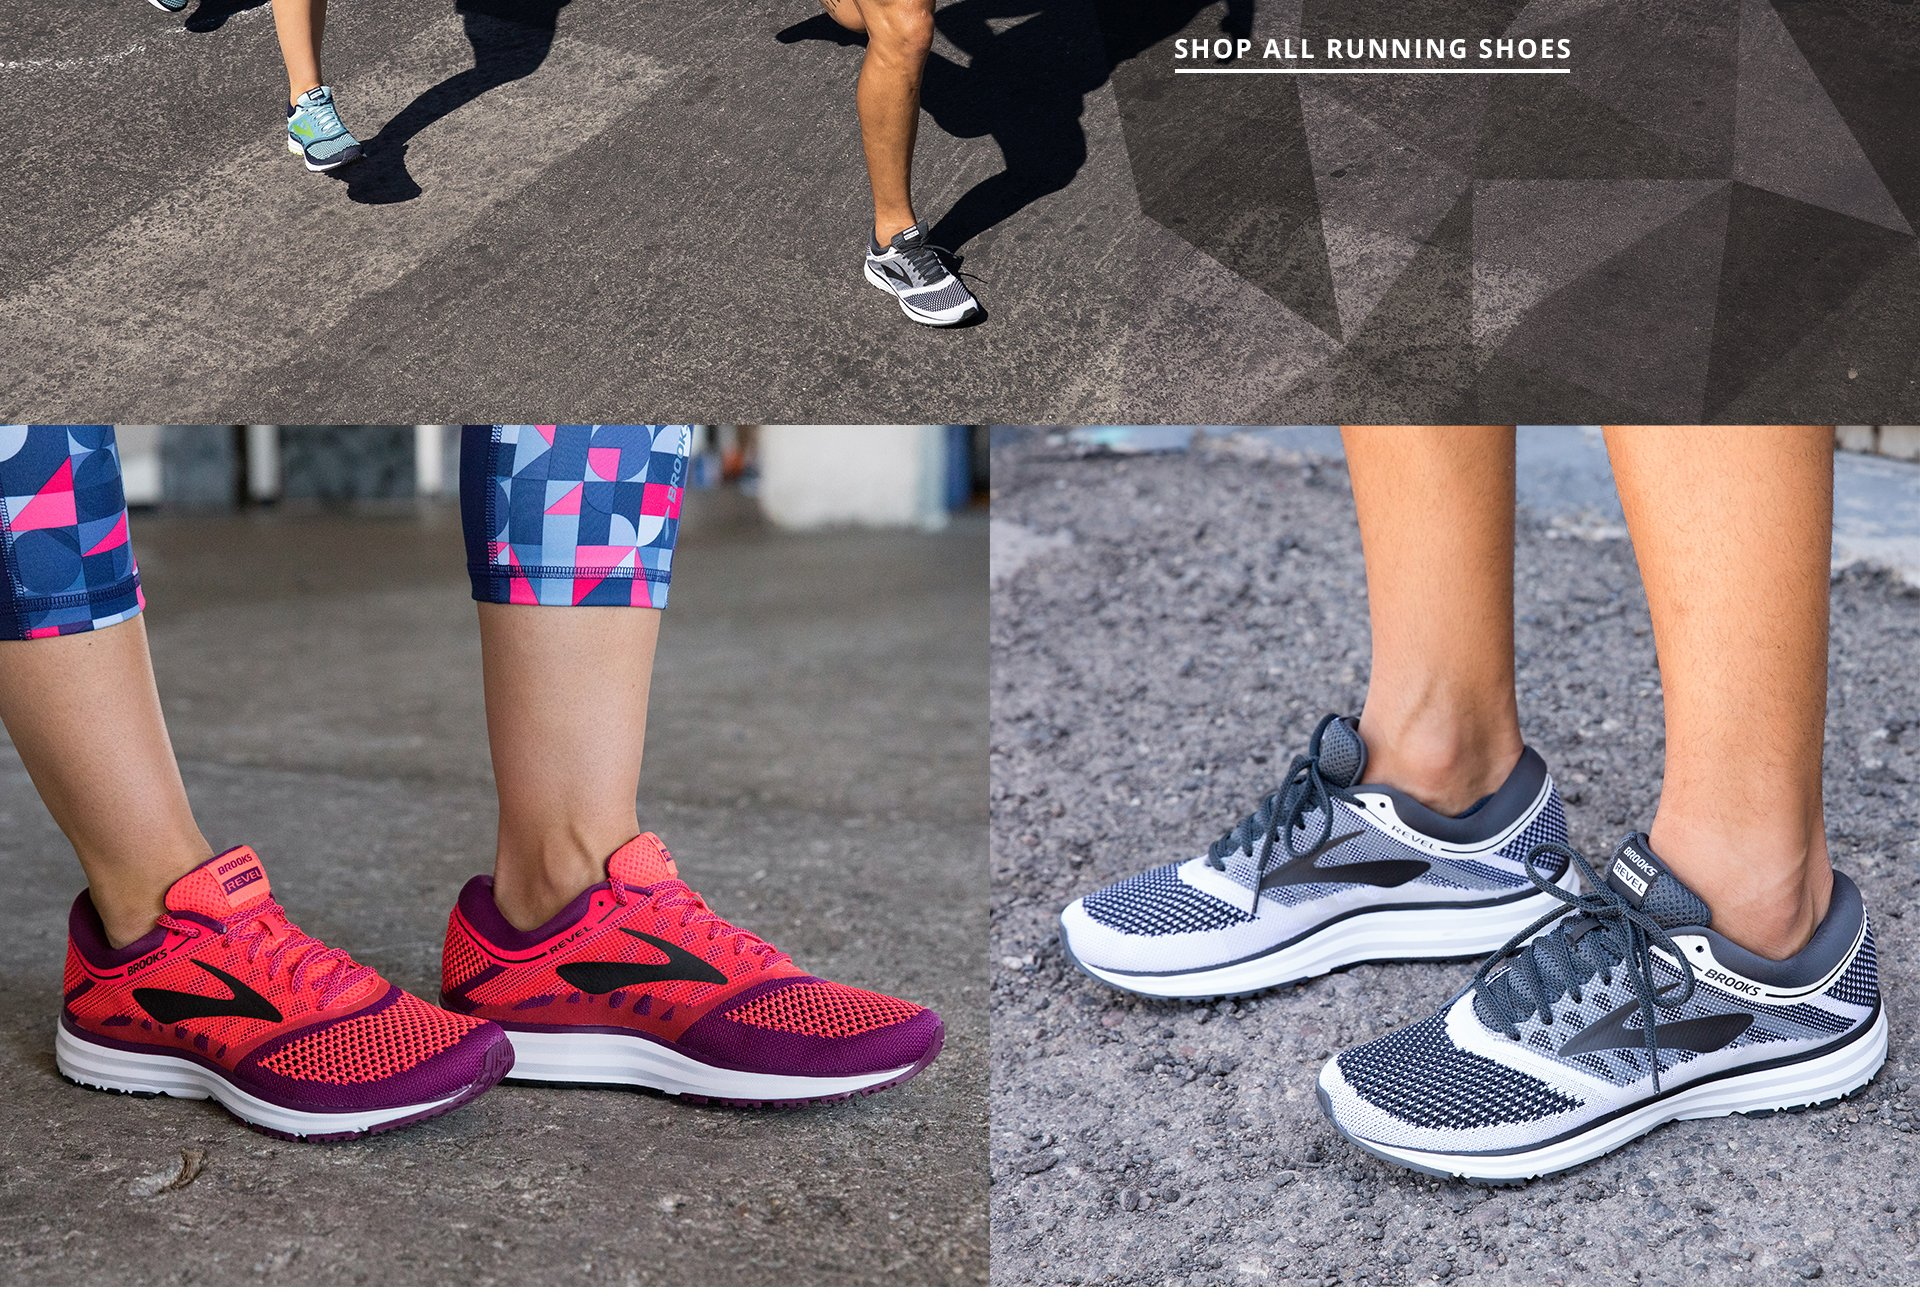 Shop All Running Shoes